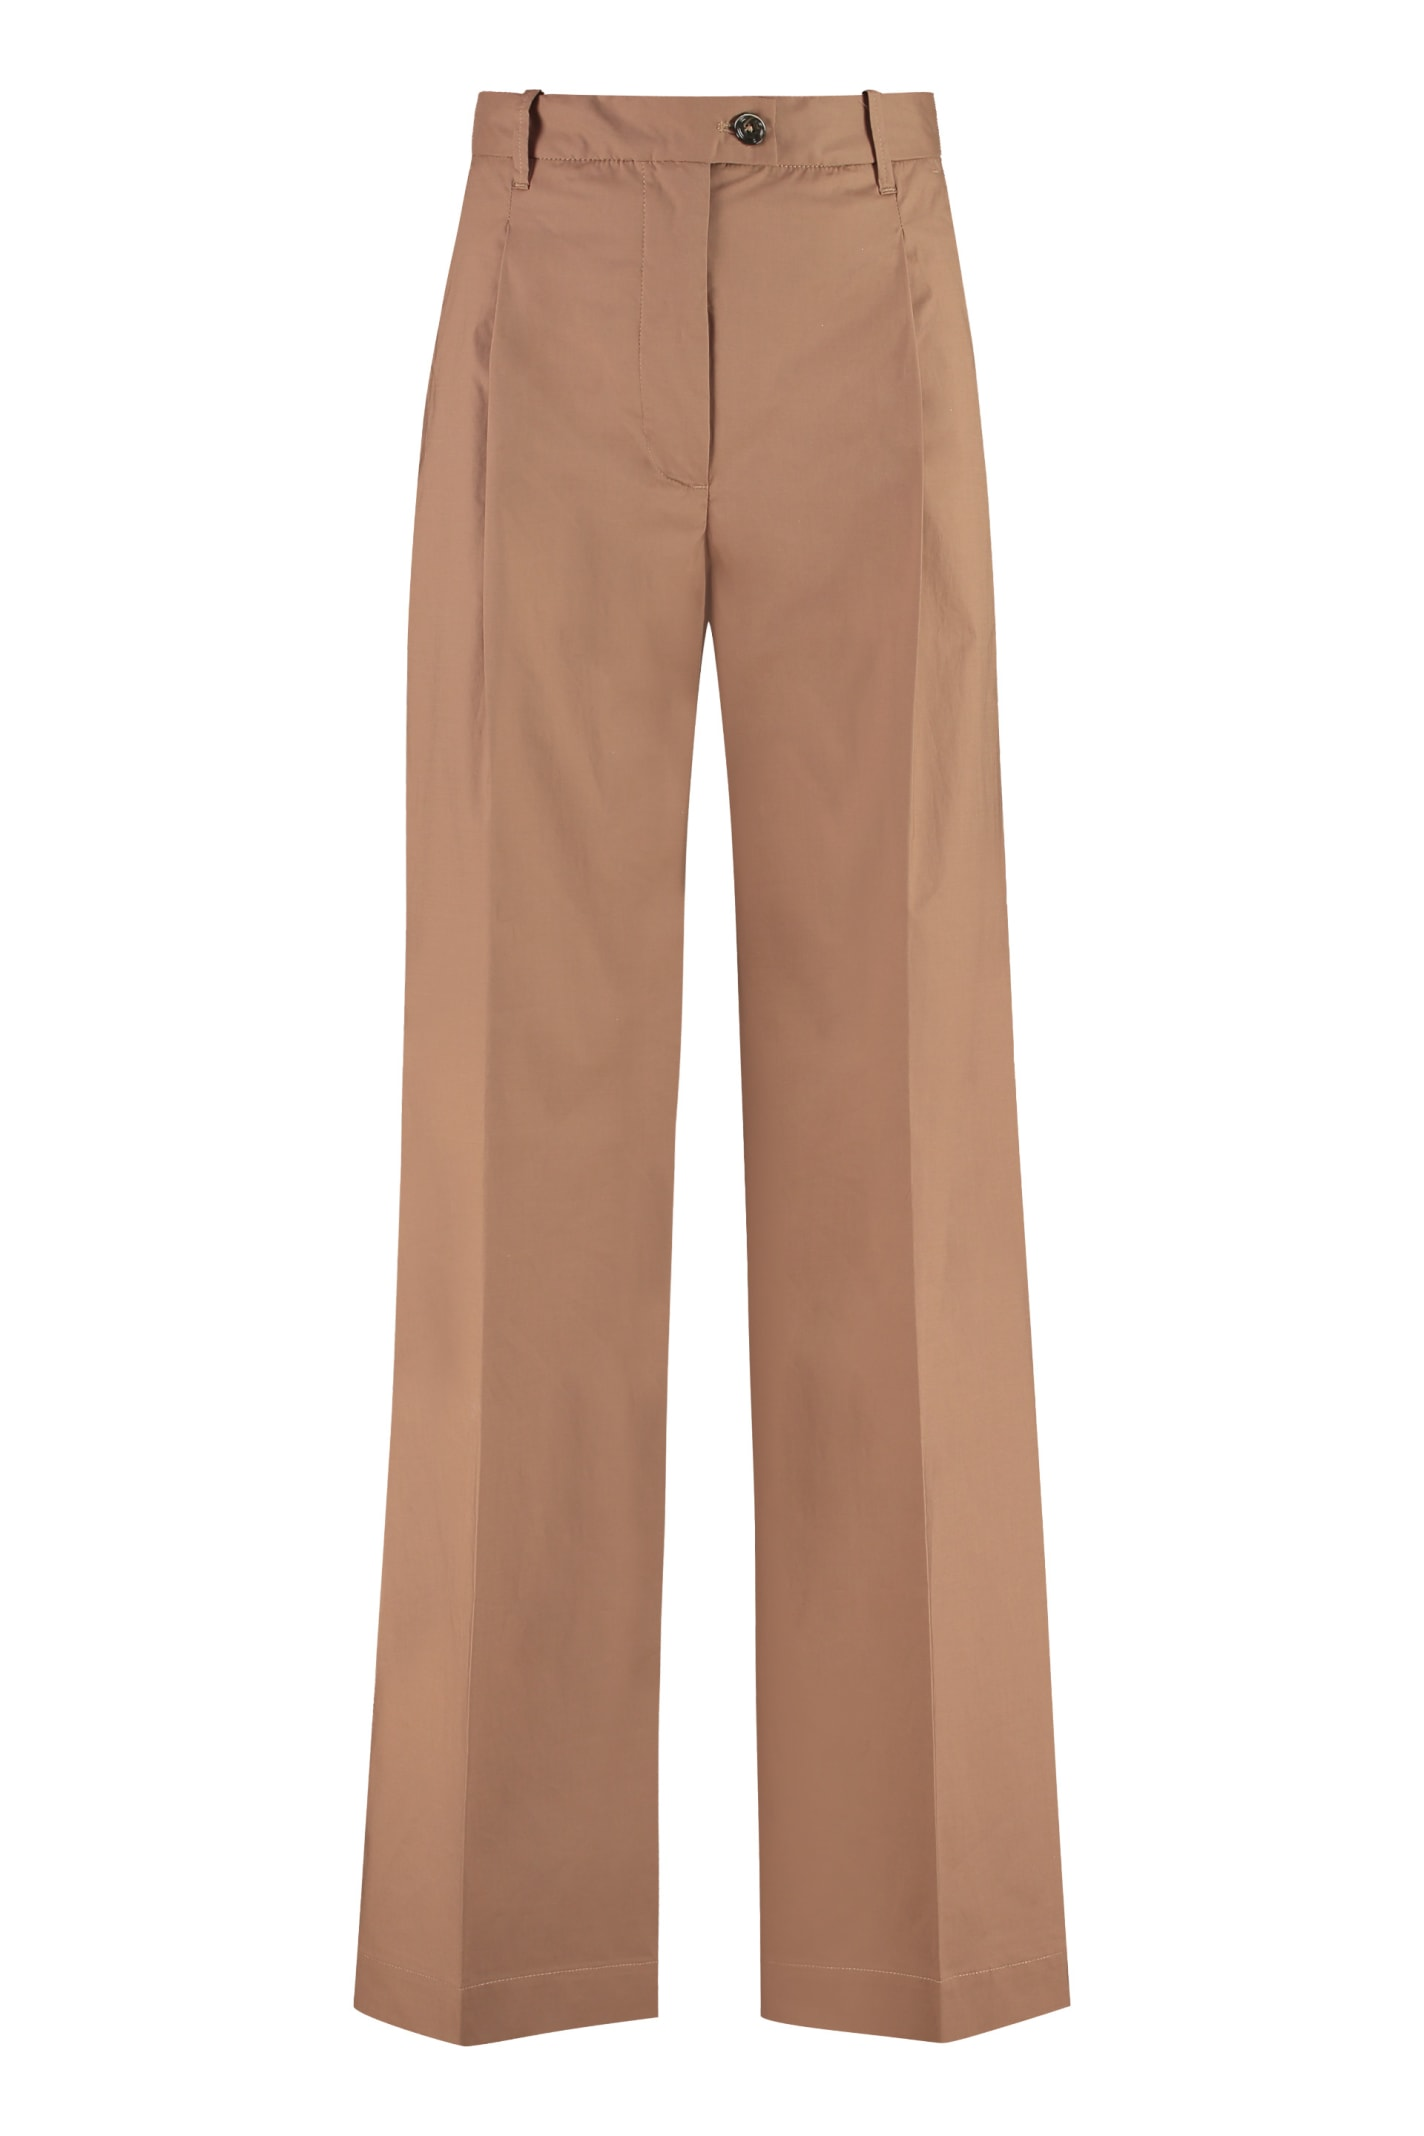 Nine in the Morning Alice Chino Pants